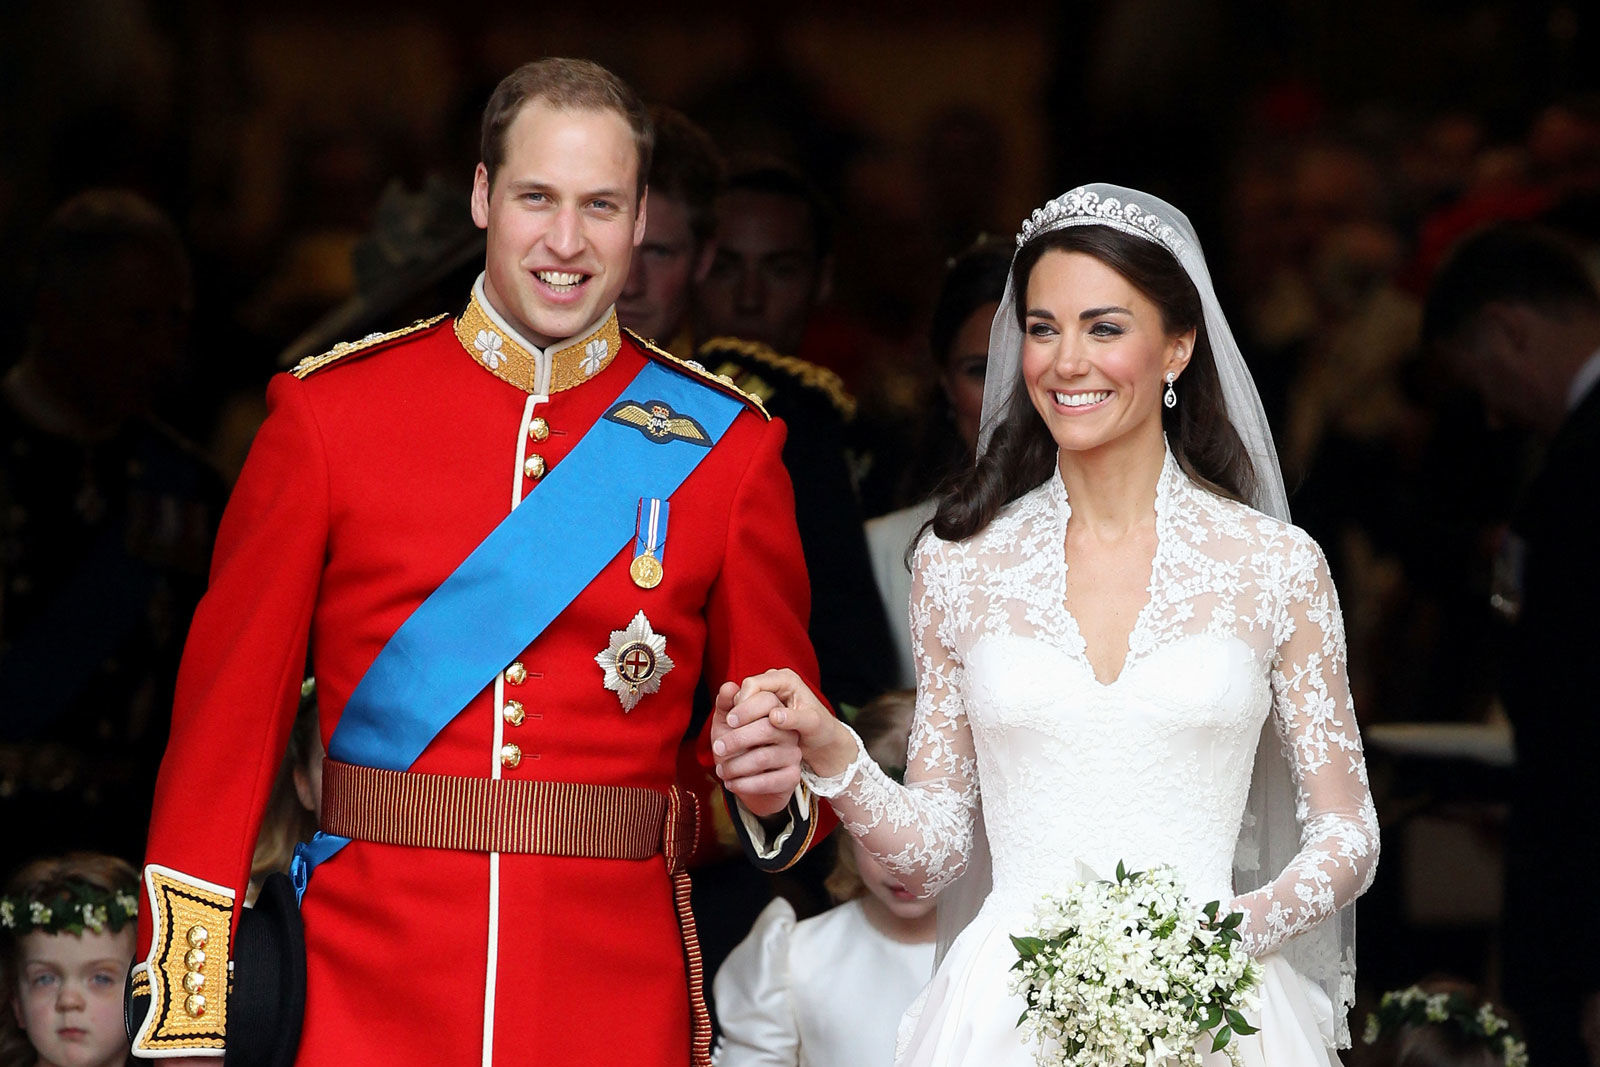 Why Fruitcake Is Always Served at Royal Weddings